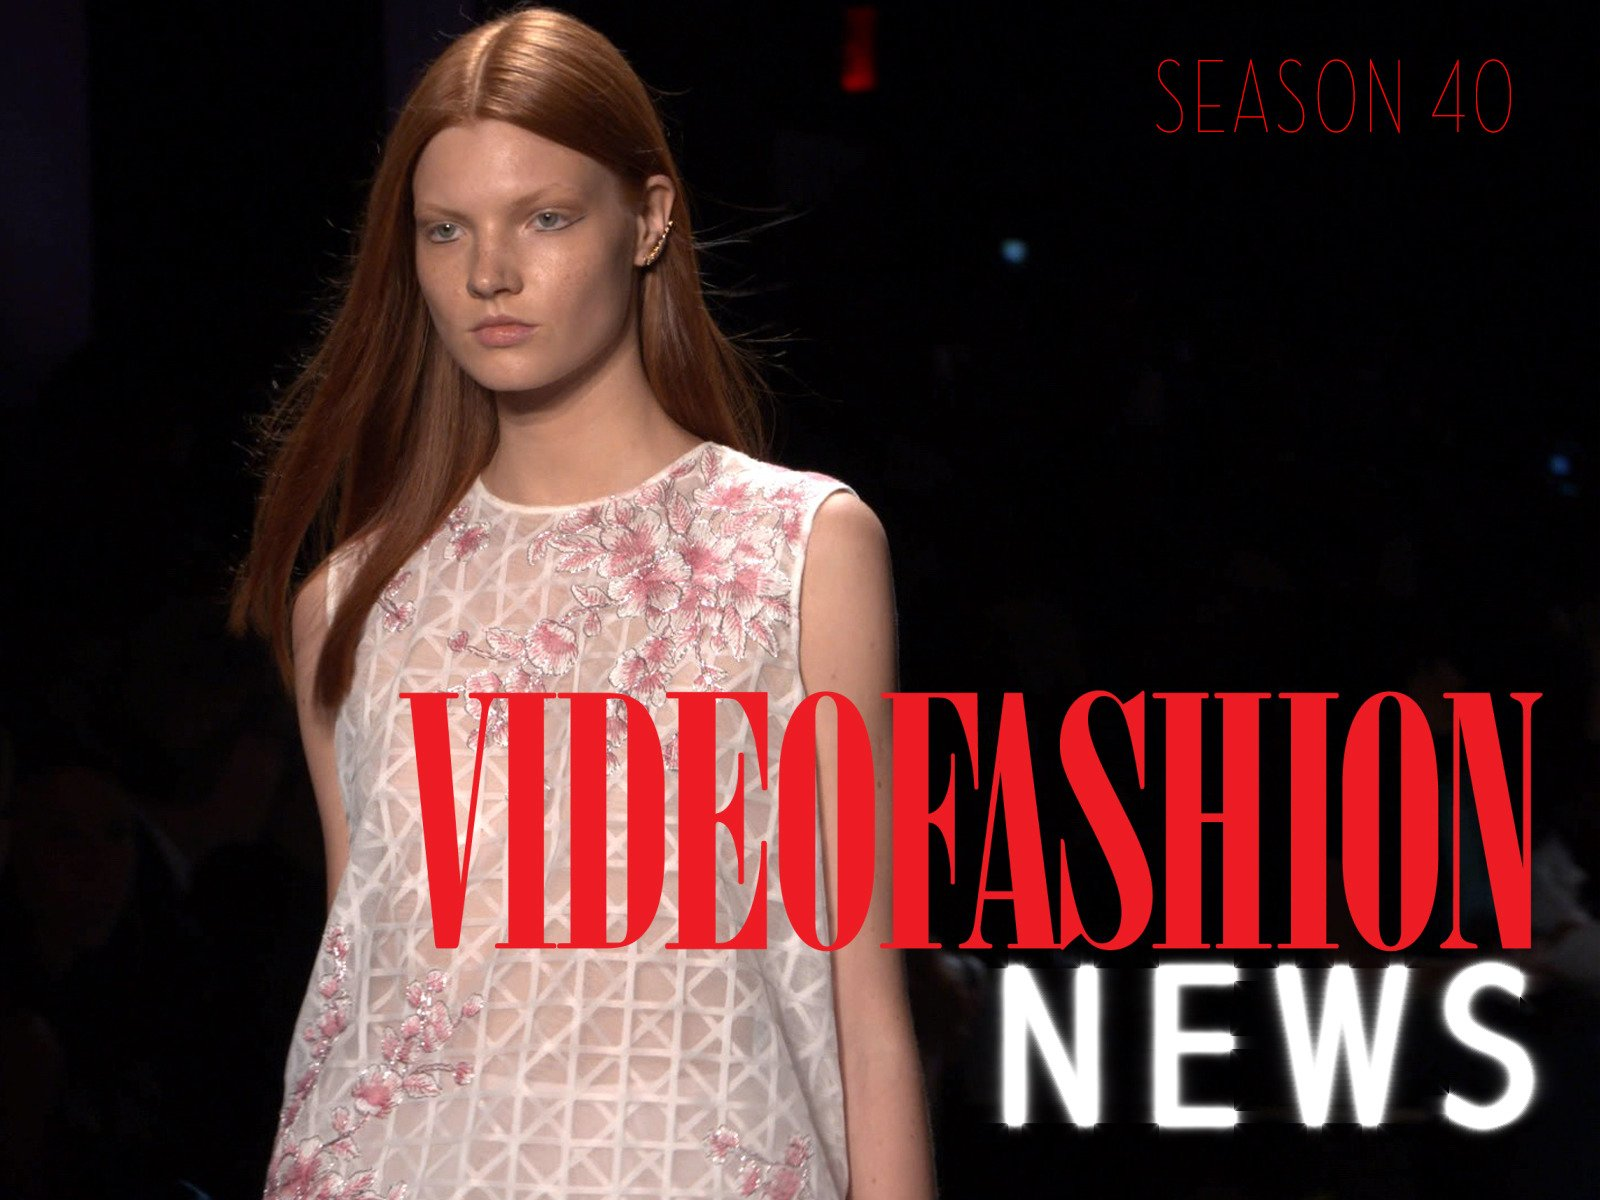 Videofashion News - Season 1